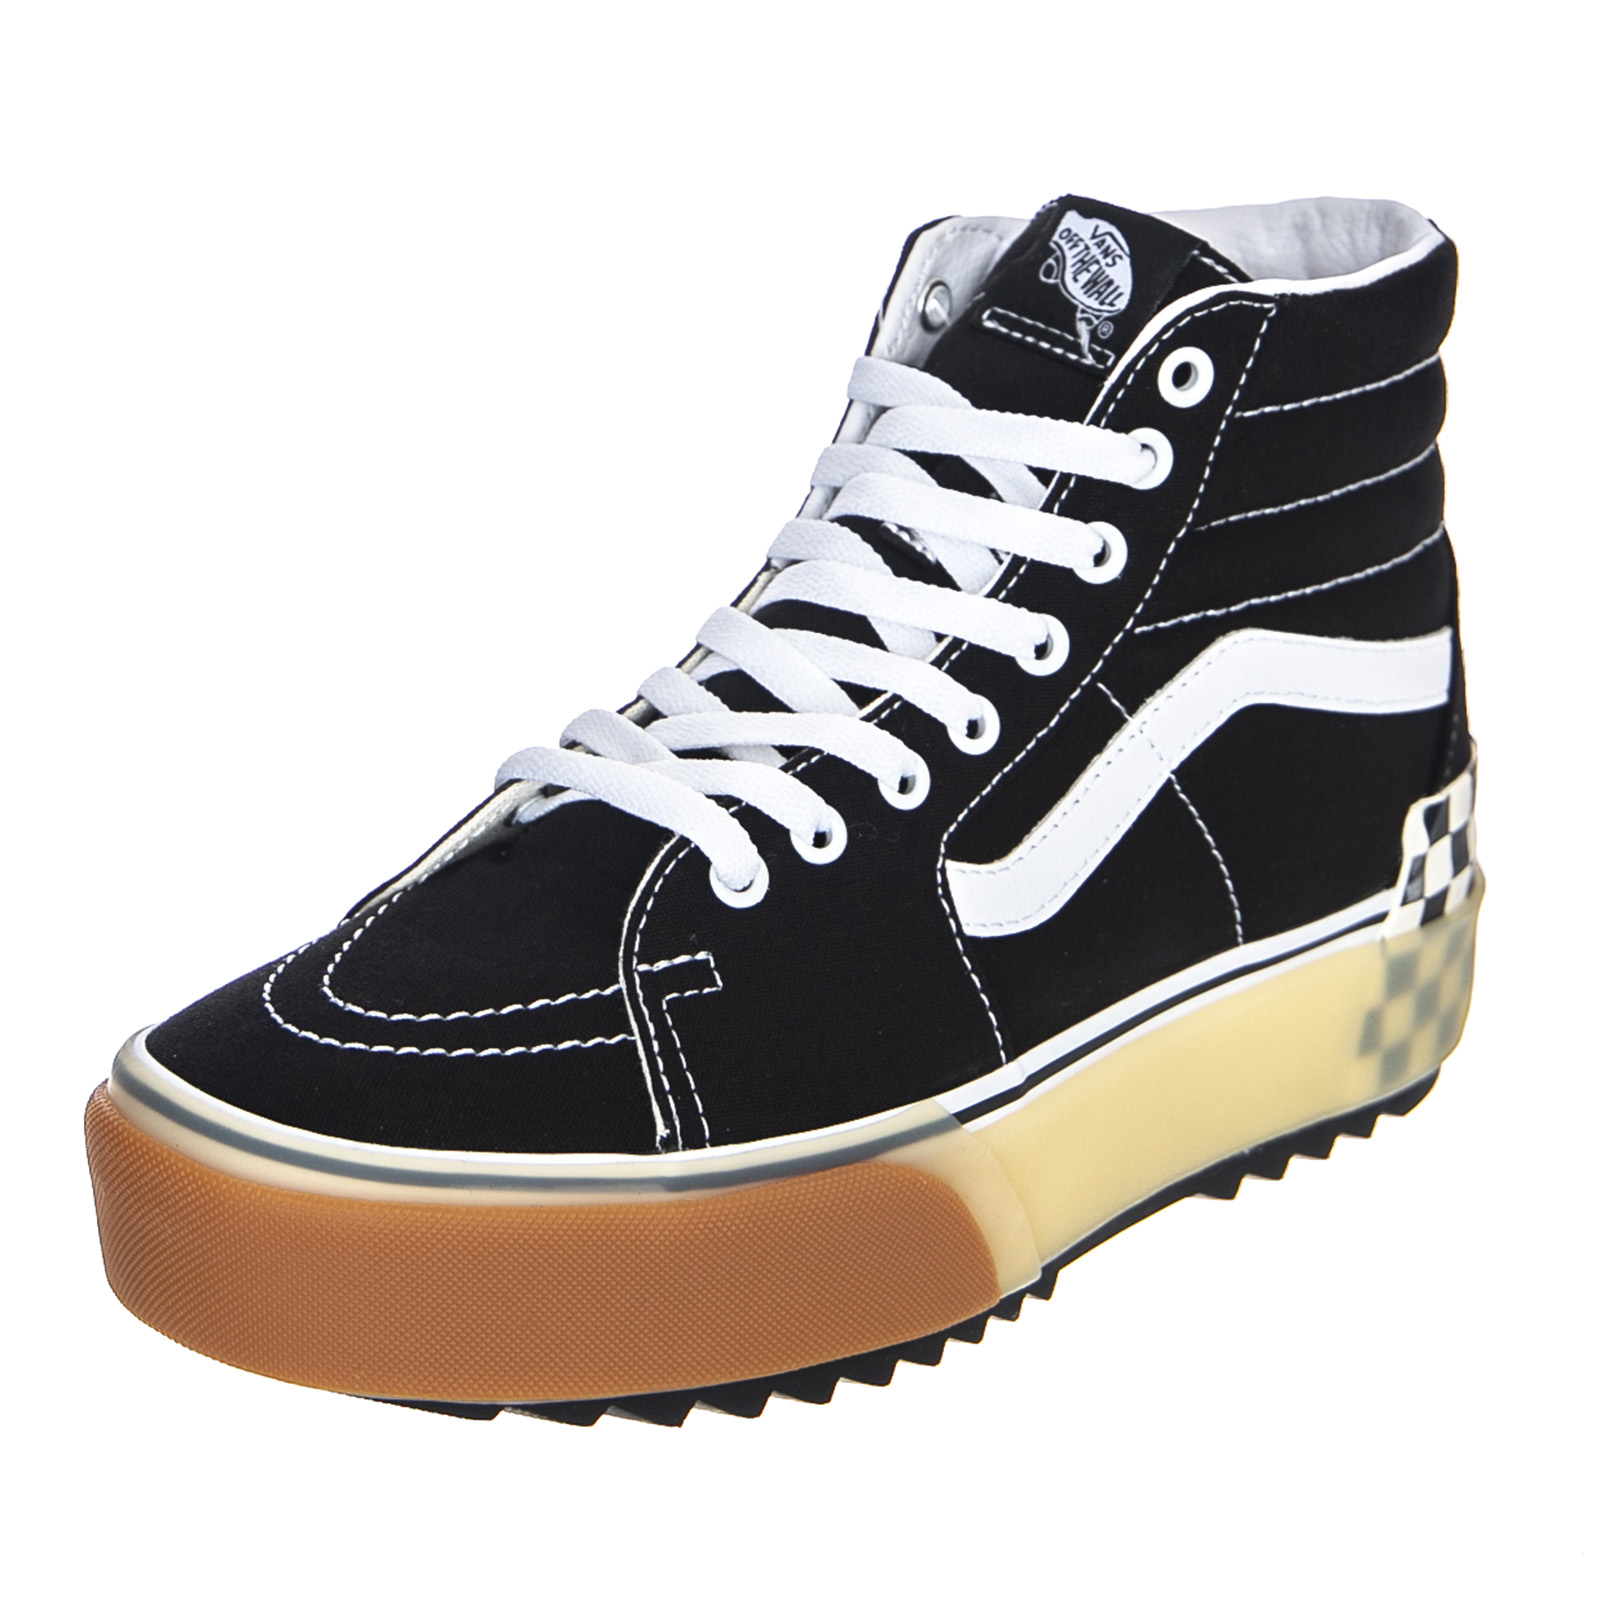 Details about Vans Ua Sk8 Hi Stacked BlackChecherboard High Sneakers MensWomens Black